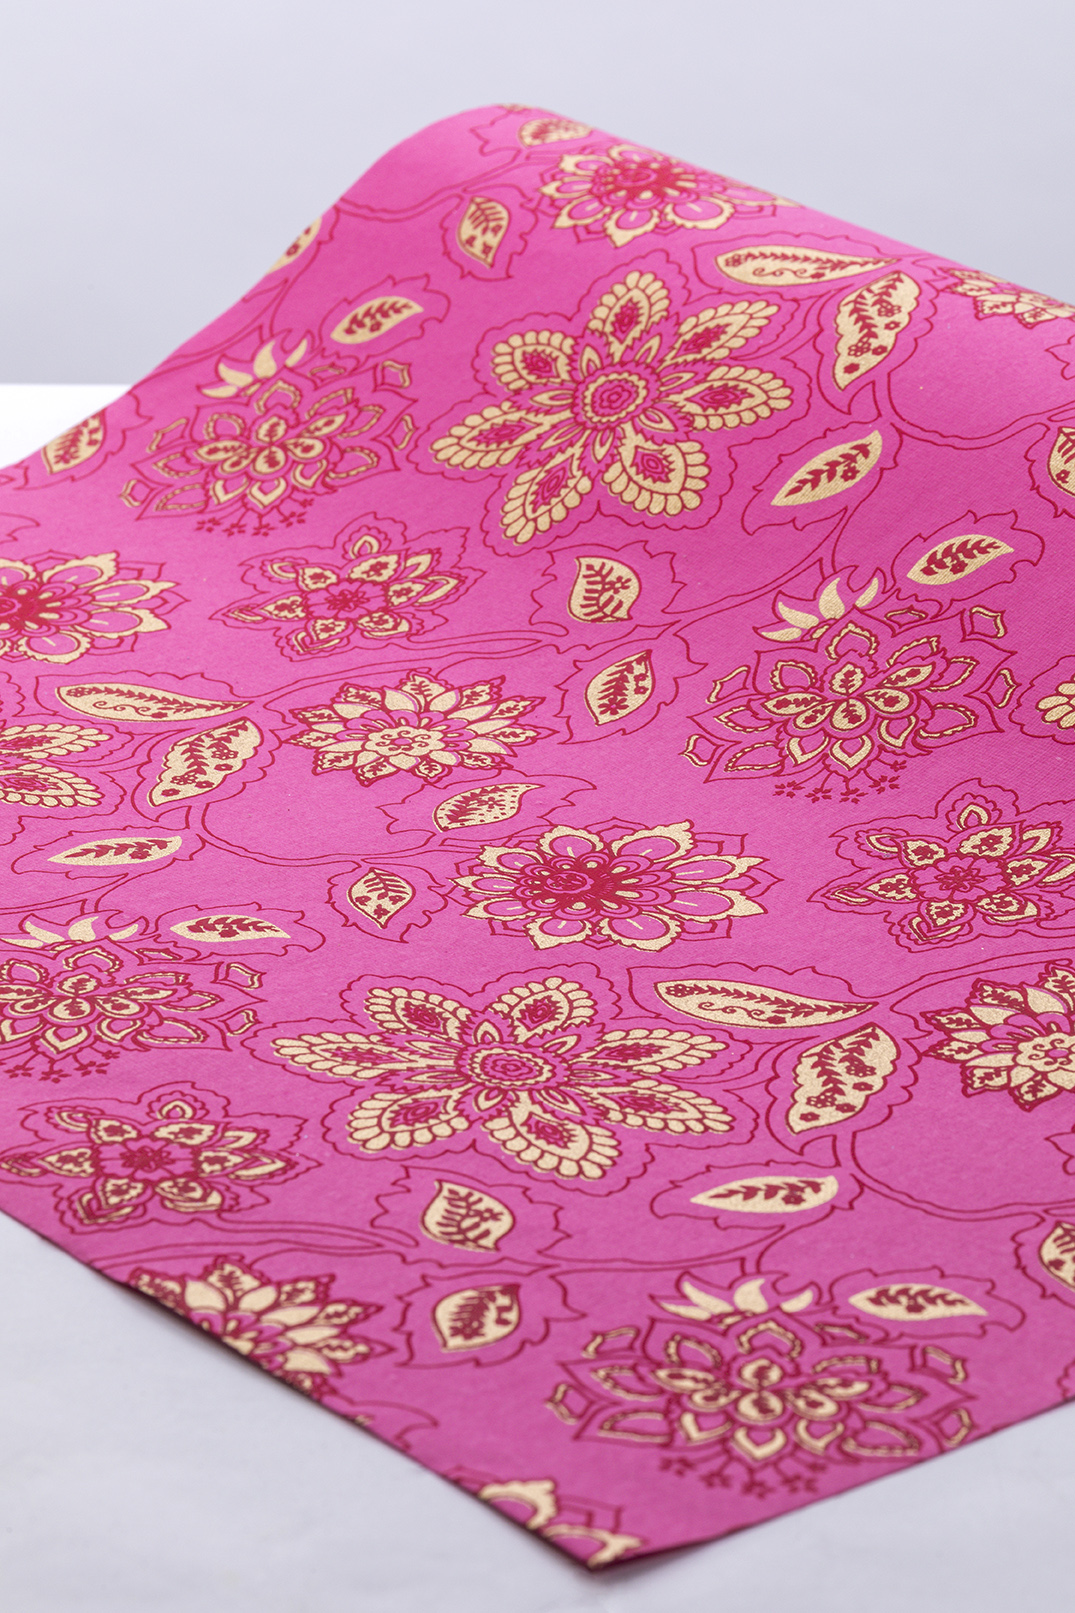 Dahlia CLOSEOUT Bulk Ream Roll Floral Gift Wrap Wrapping Paper